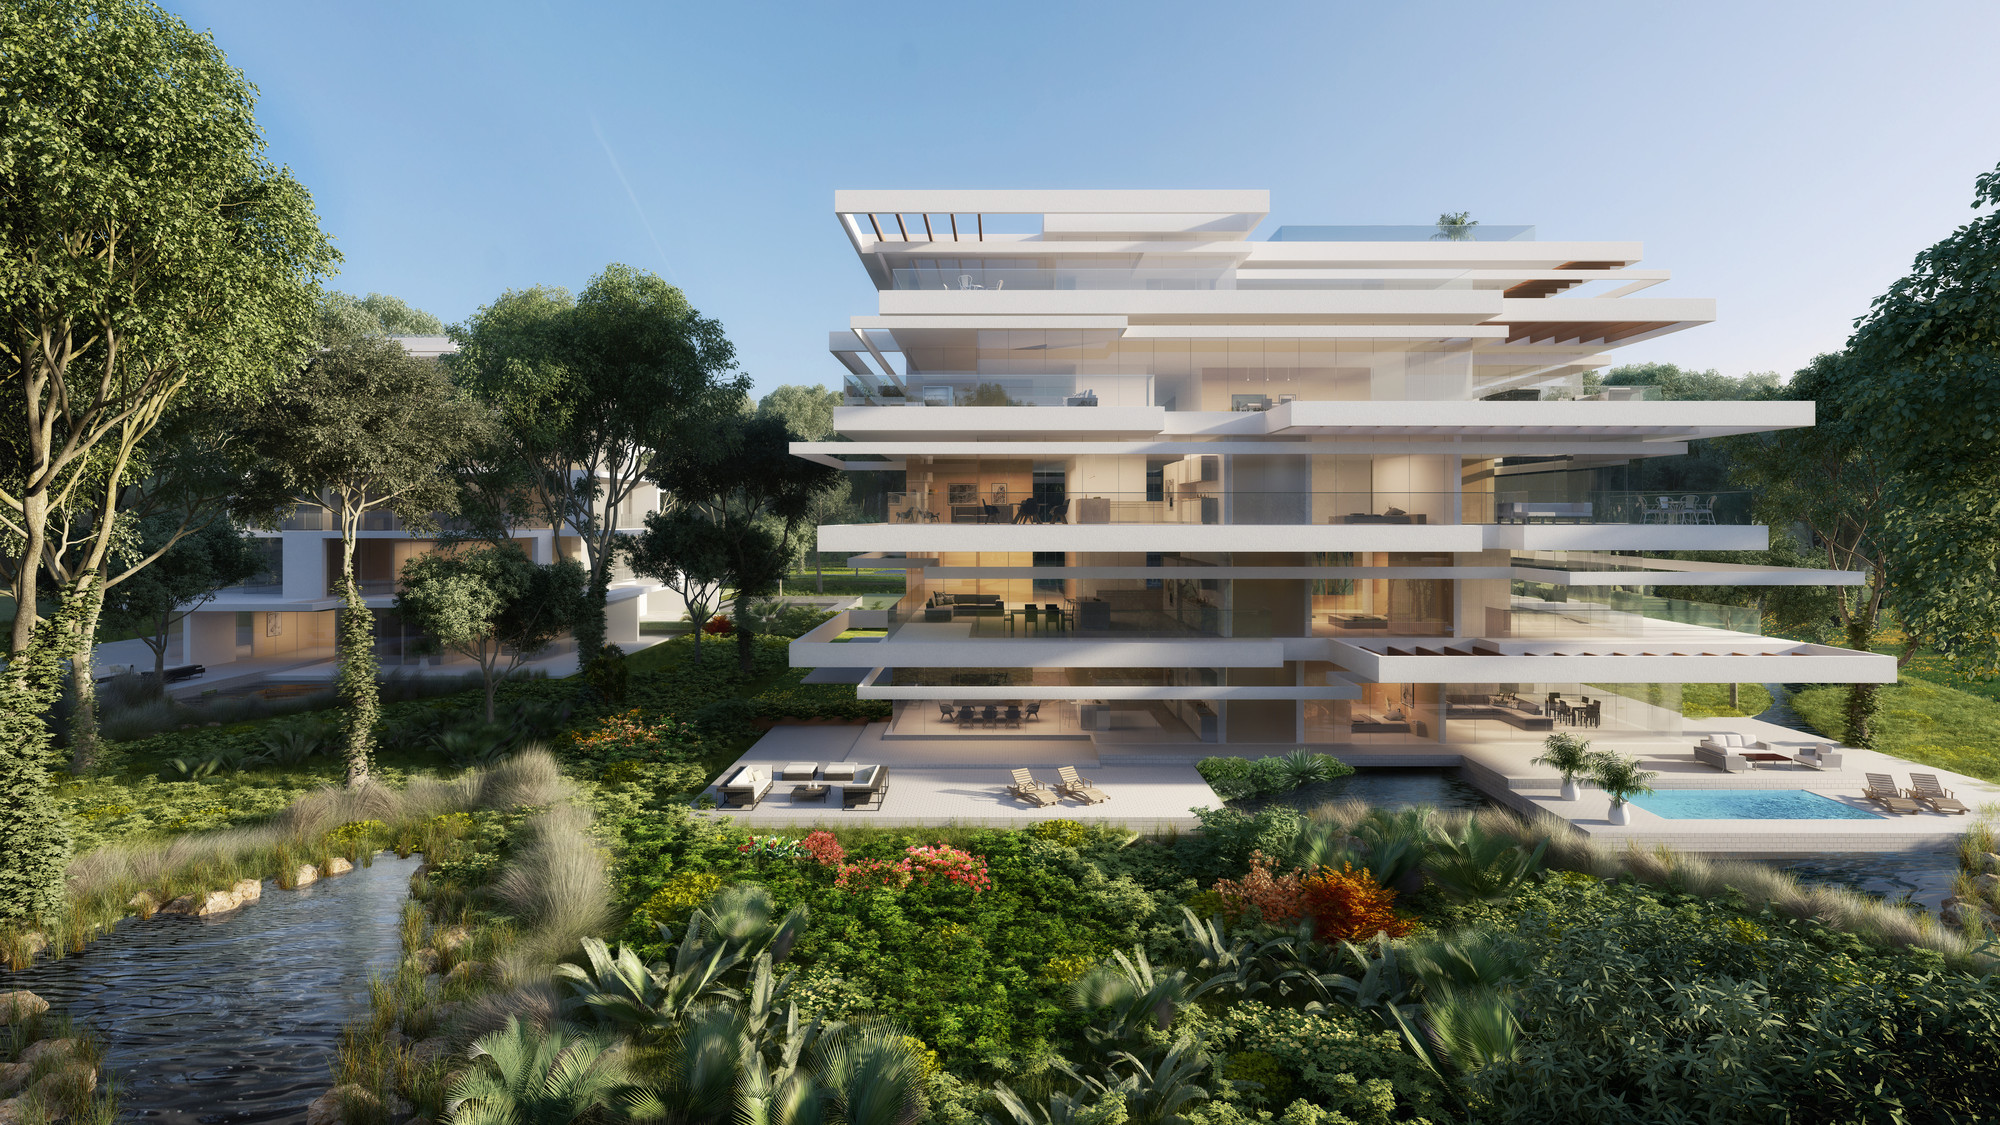 Taking Daylight to the Next Level: How Daylighting Analysis is Changing Design, 10 DESIGN's Ashjar at Al Barari residential project. Image Courtesy of 10 DESIGN